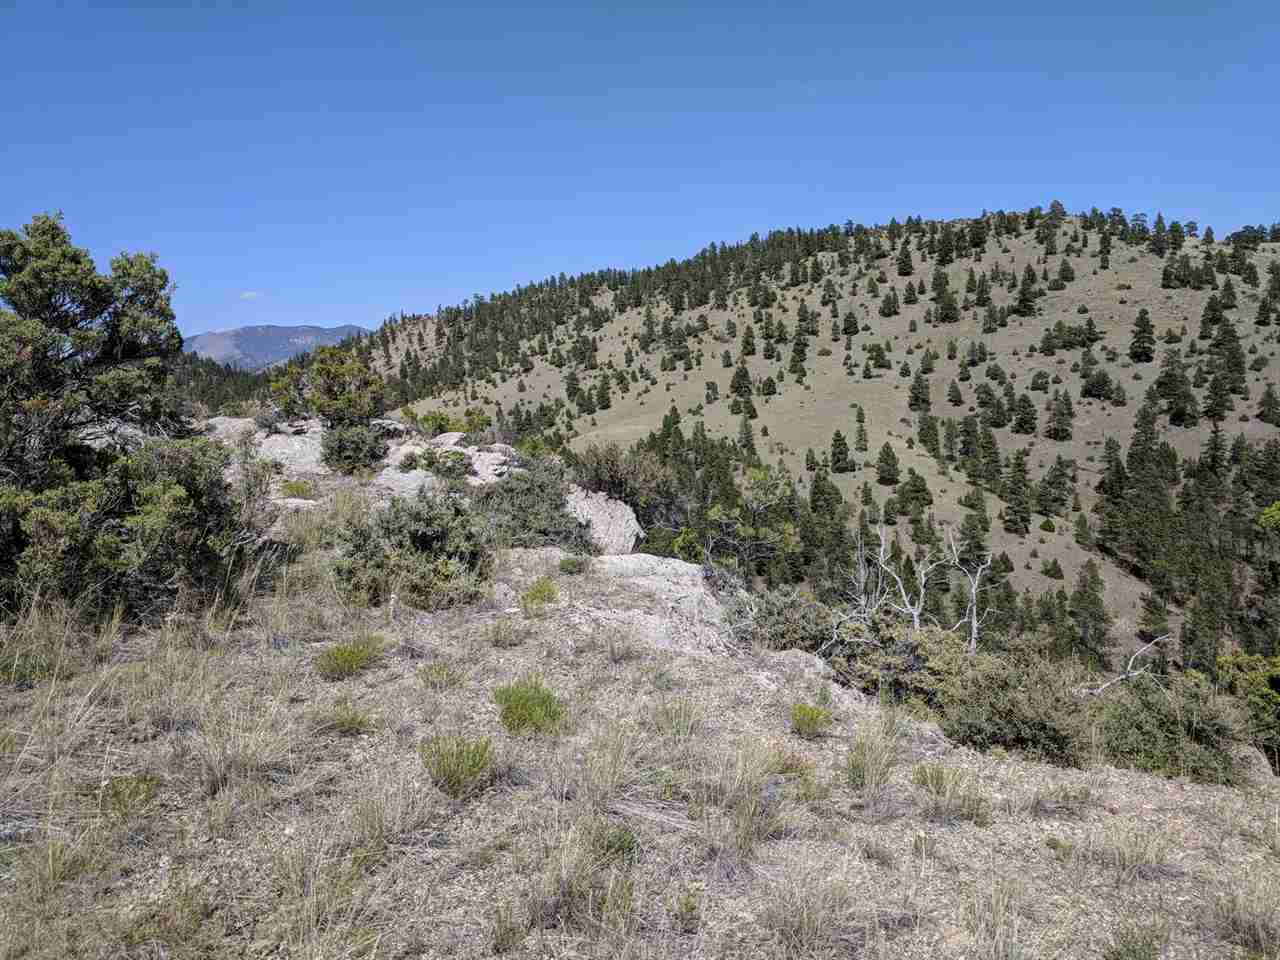 Tbd Craigle Lane, Helena, MT 59602 (MLS# 1302262) - Helena